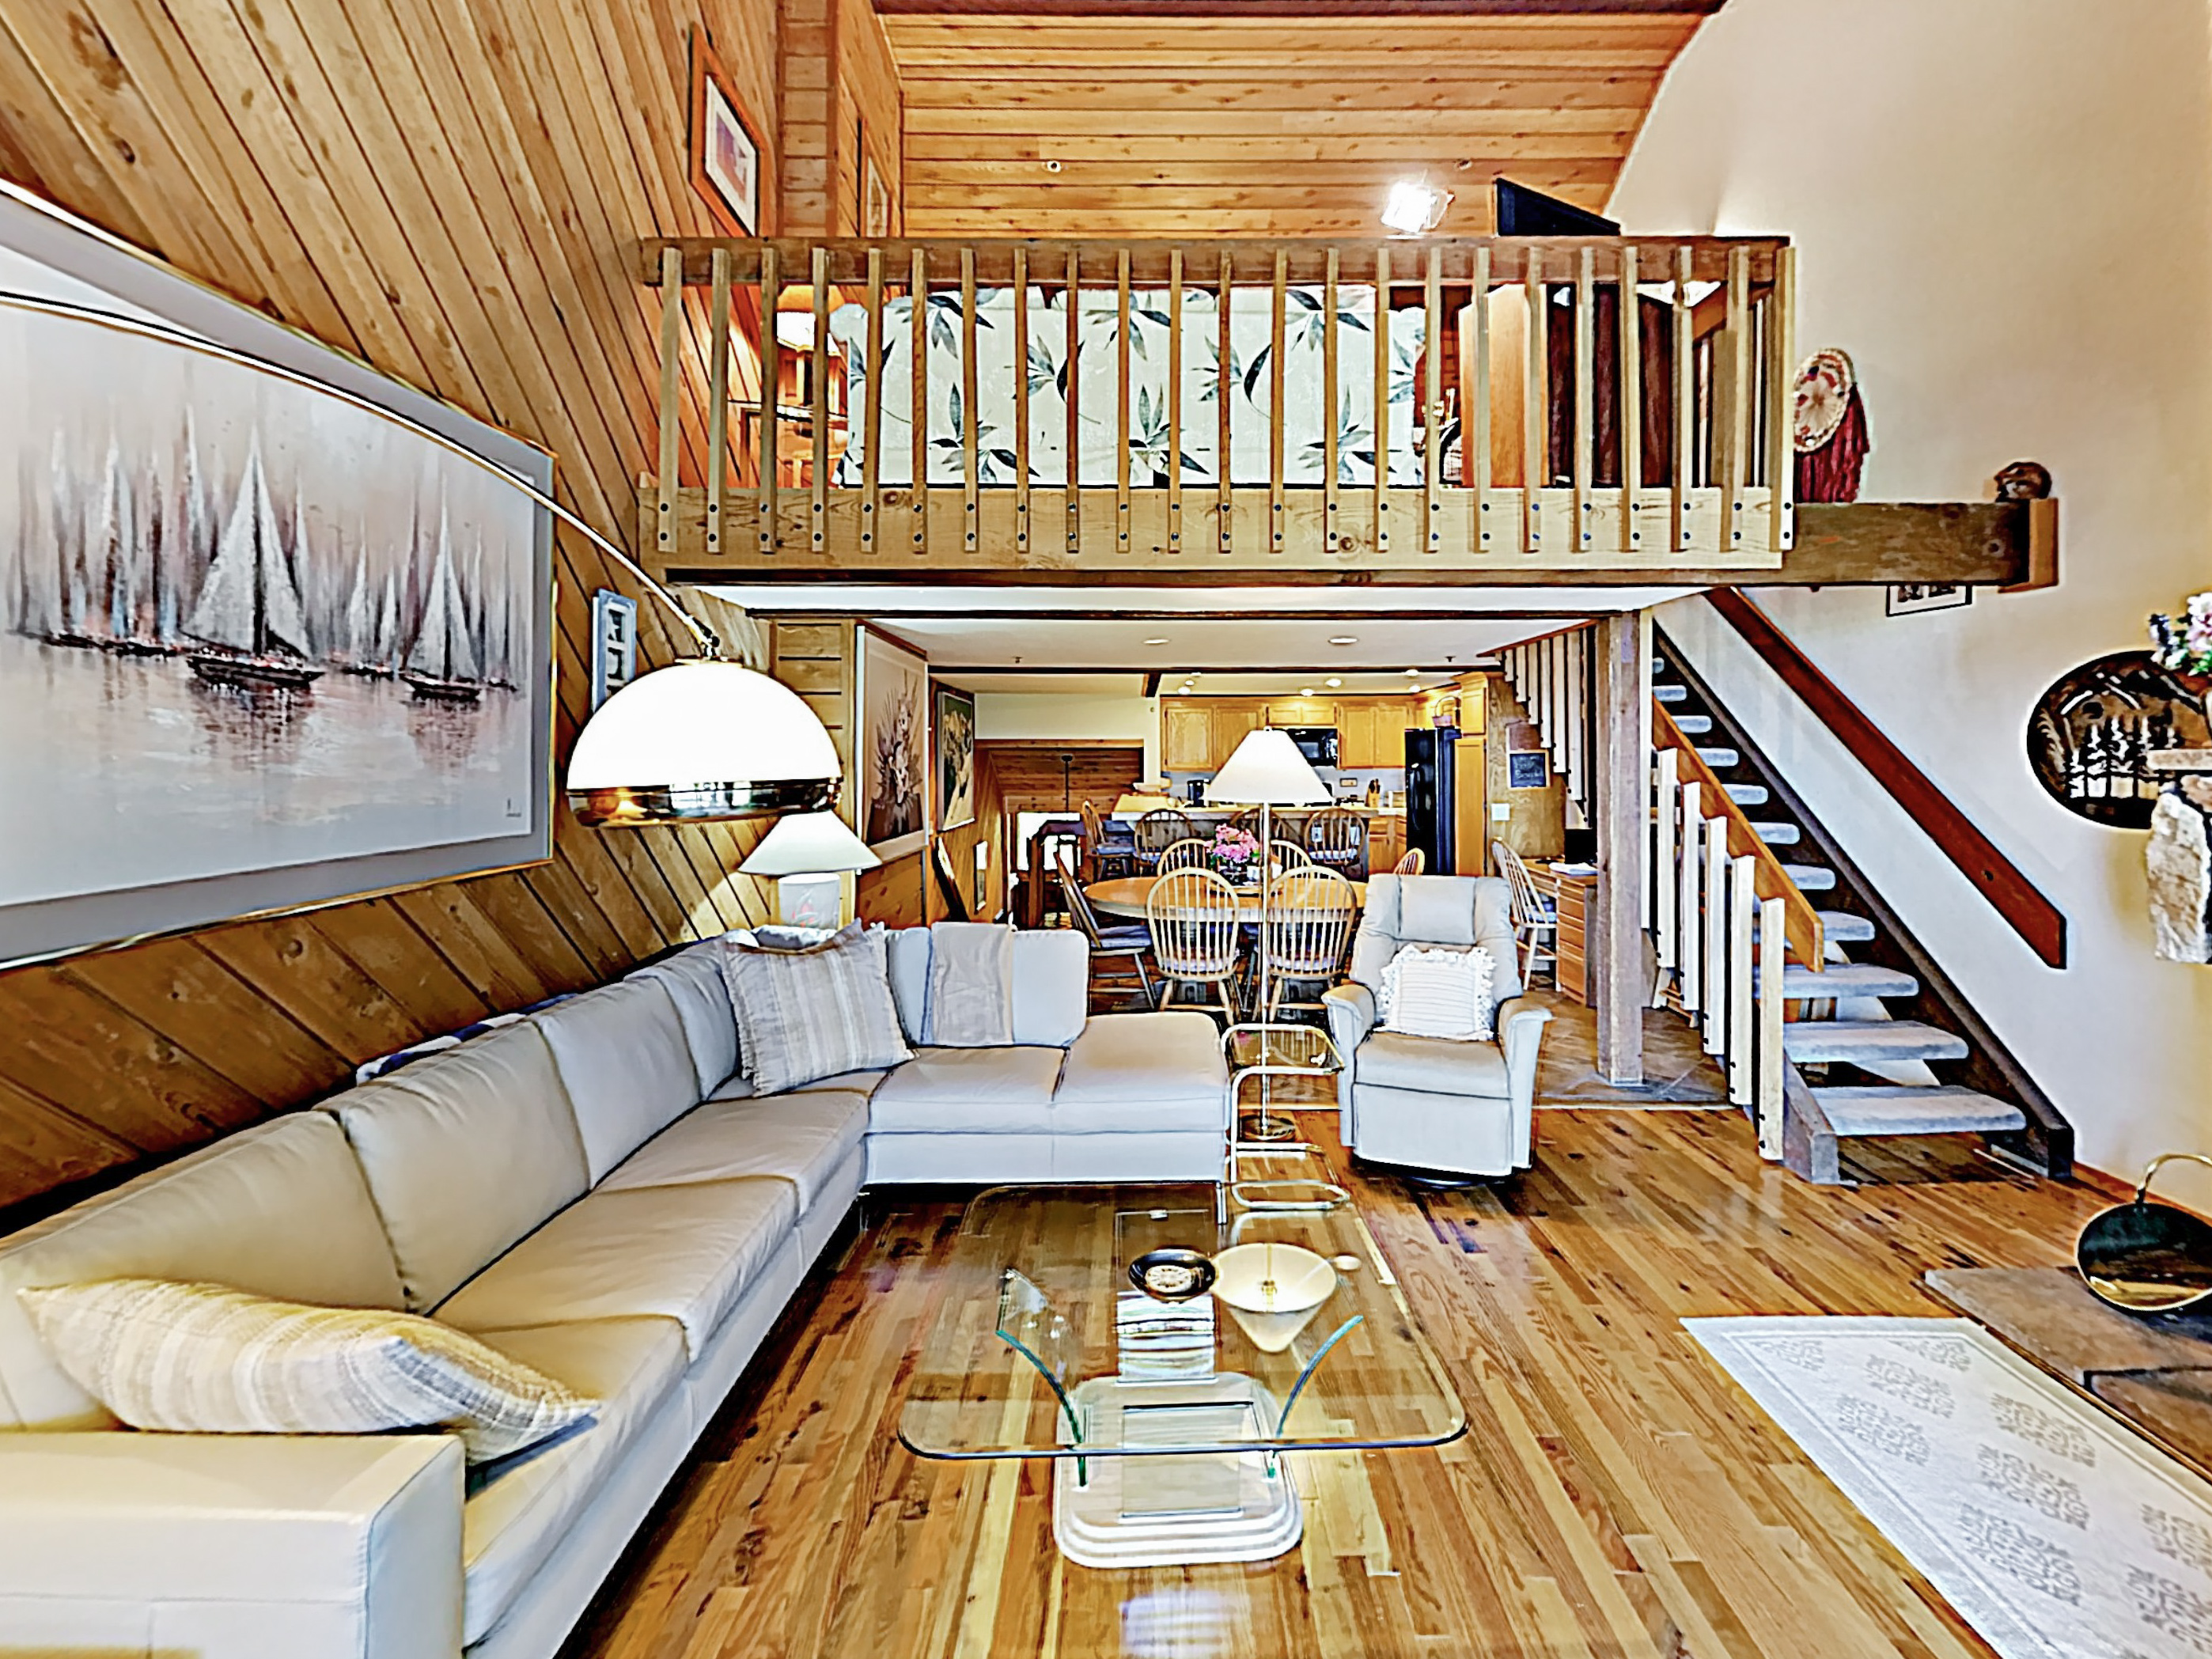 Park City UT Vacation Rental Welcome to Ridgepoint!